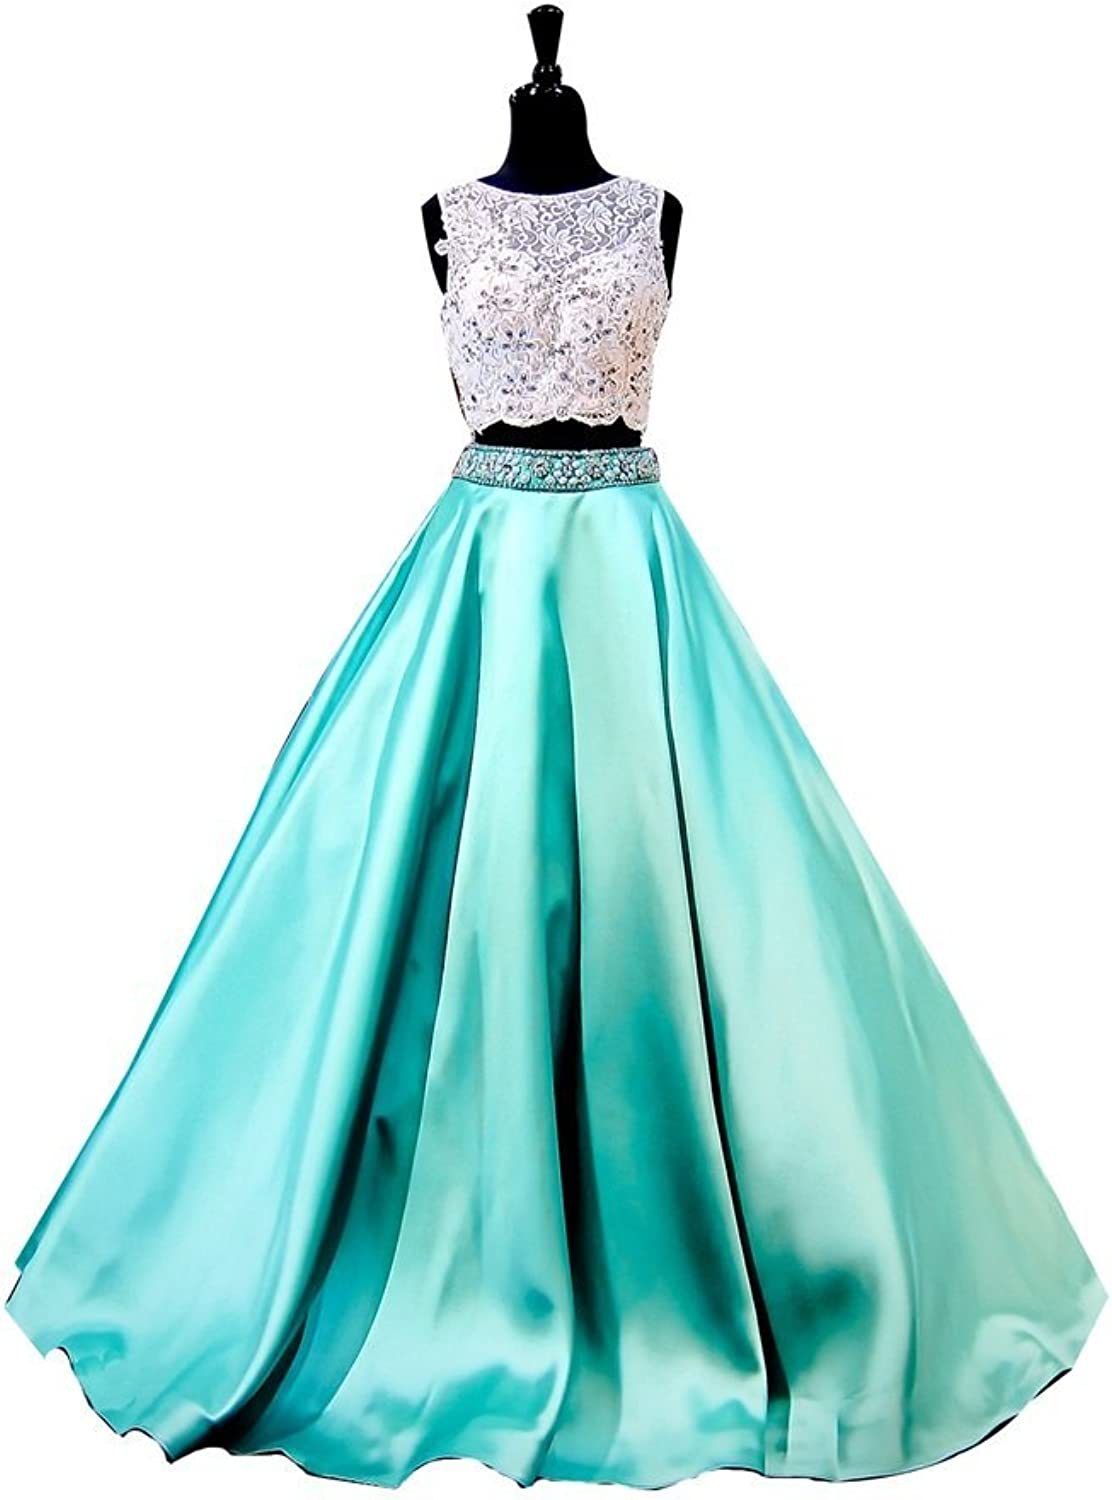 Irenwedding Women's Jewel Applique Beads Crystals Keyhole Back Two Piece Prom Dress